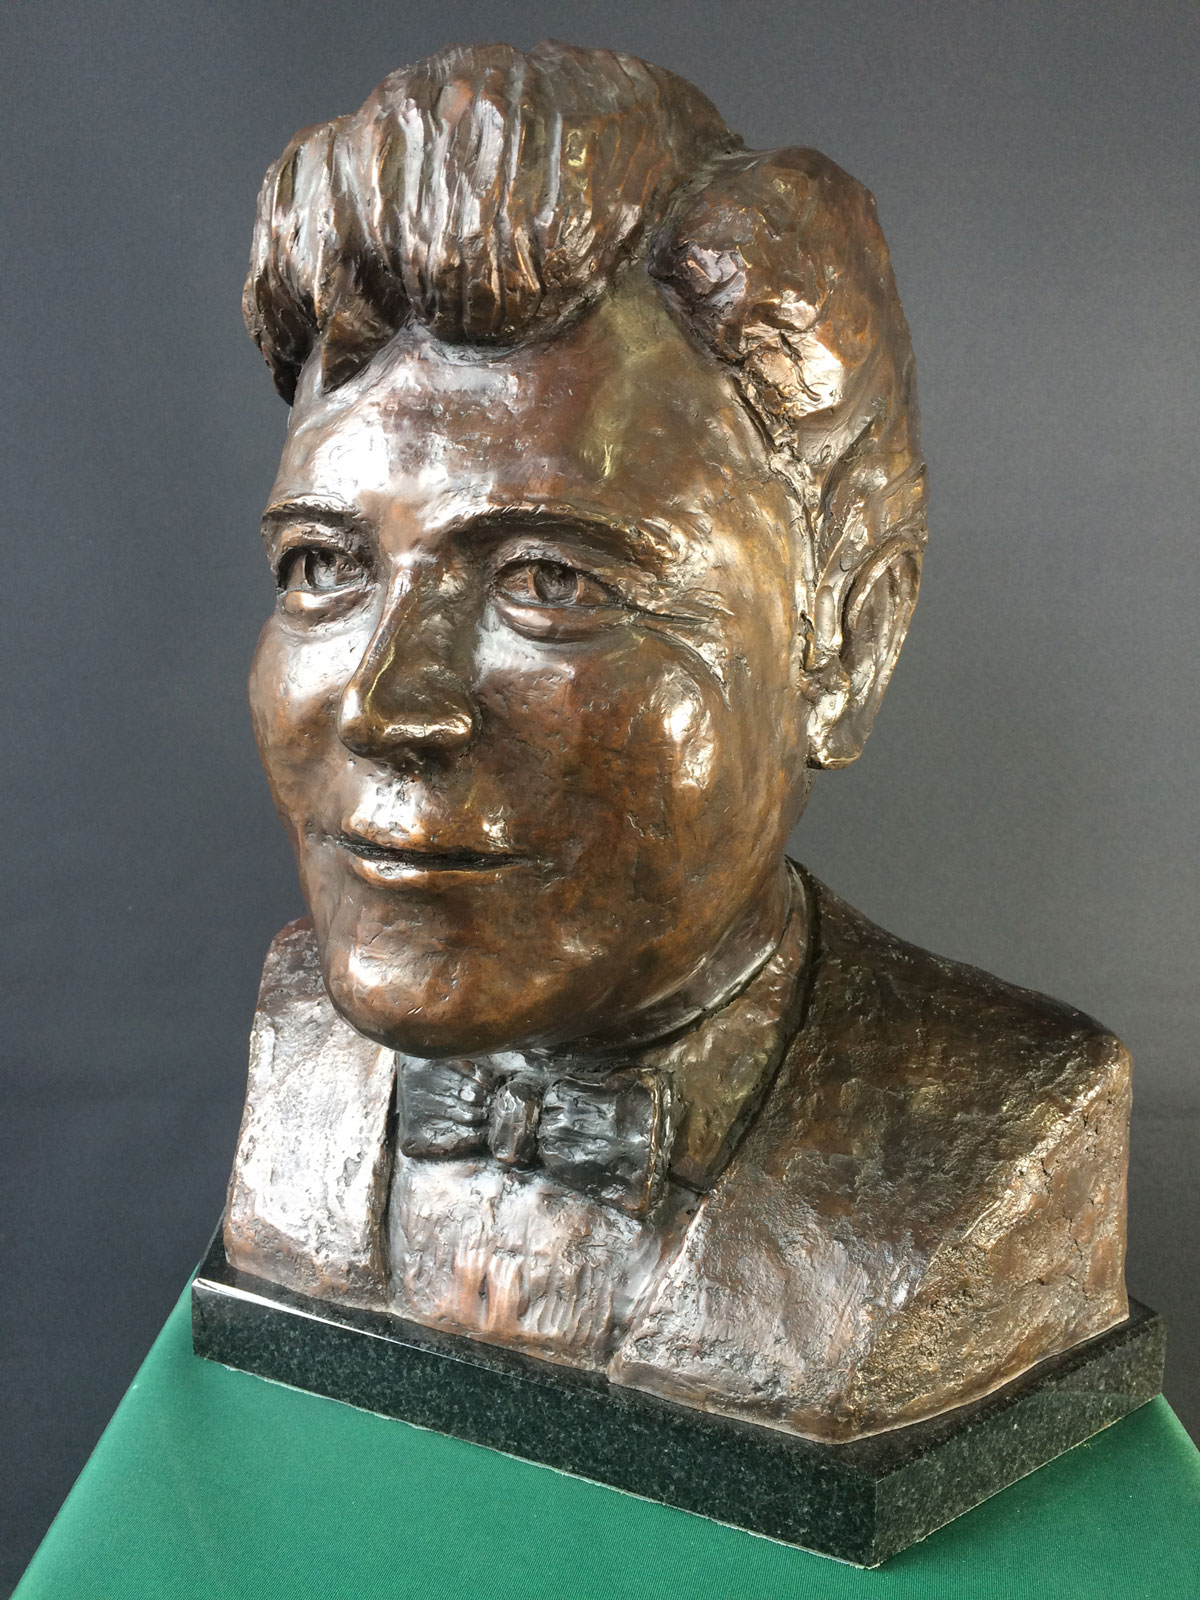 bust of 'James' by Ambrose Barber